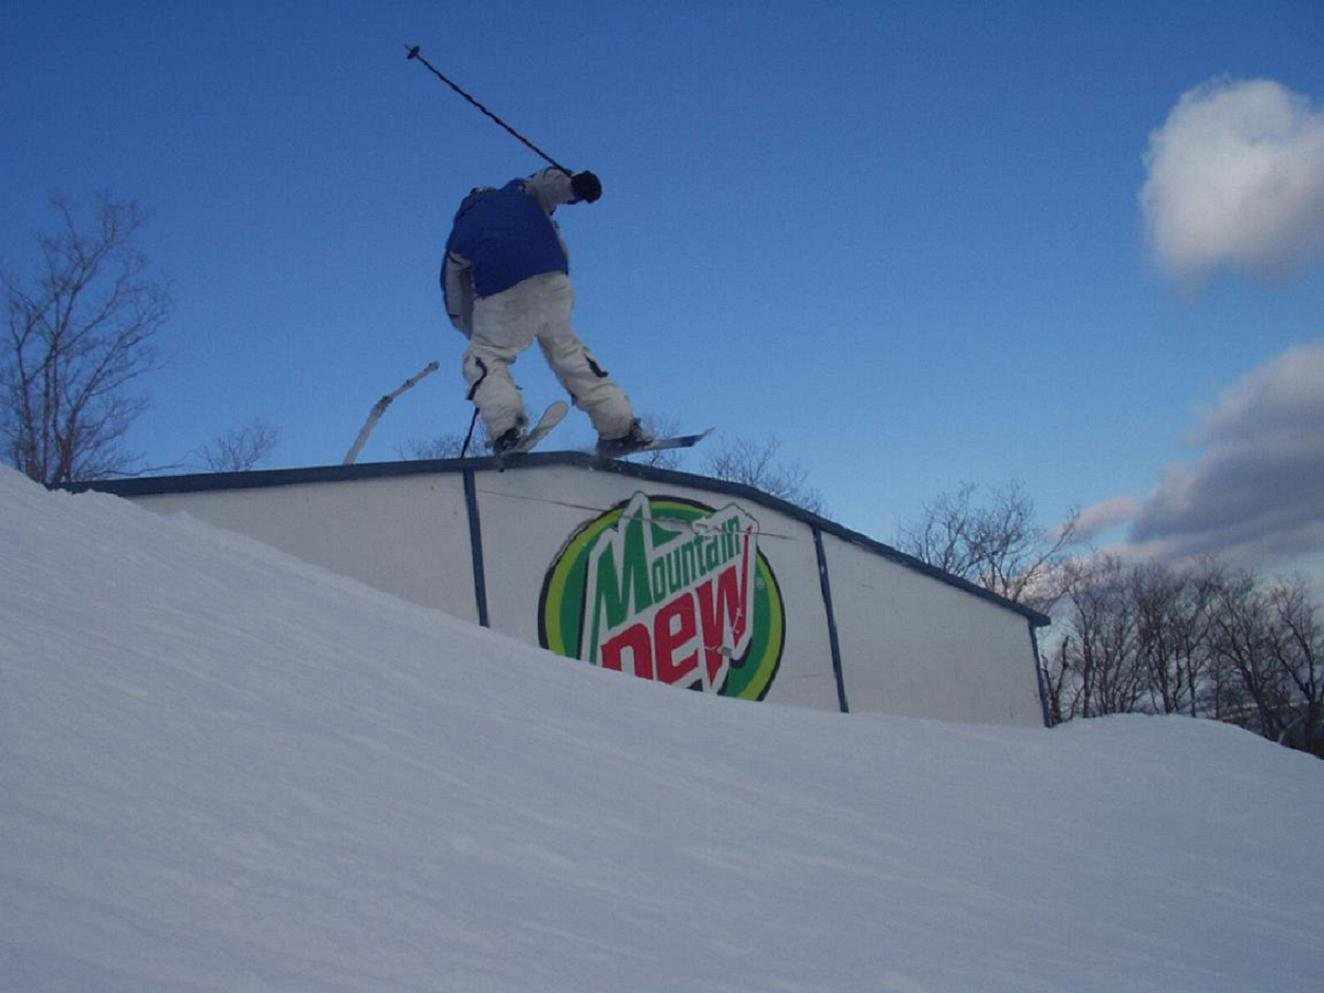 Trap rail at jay different angle